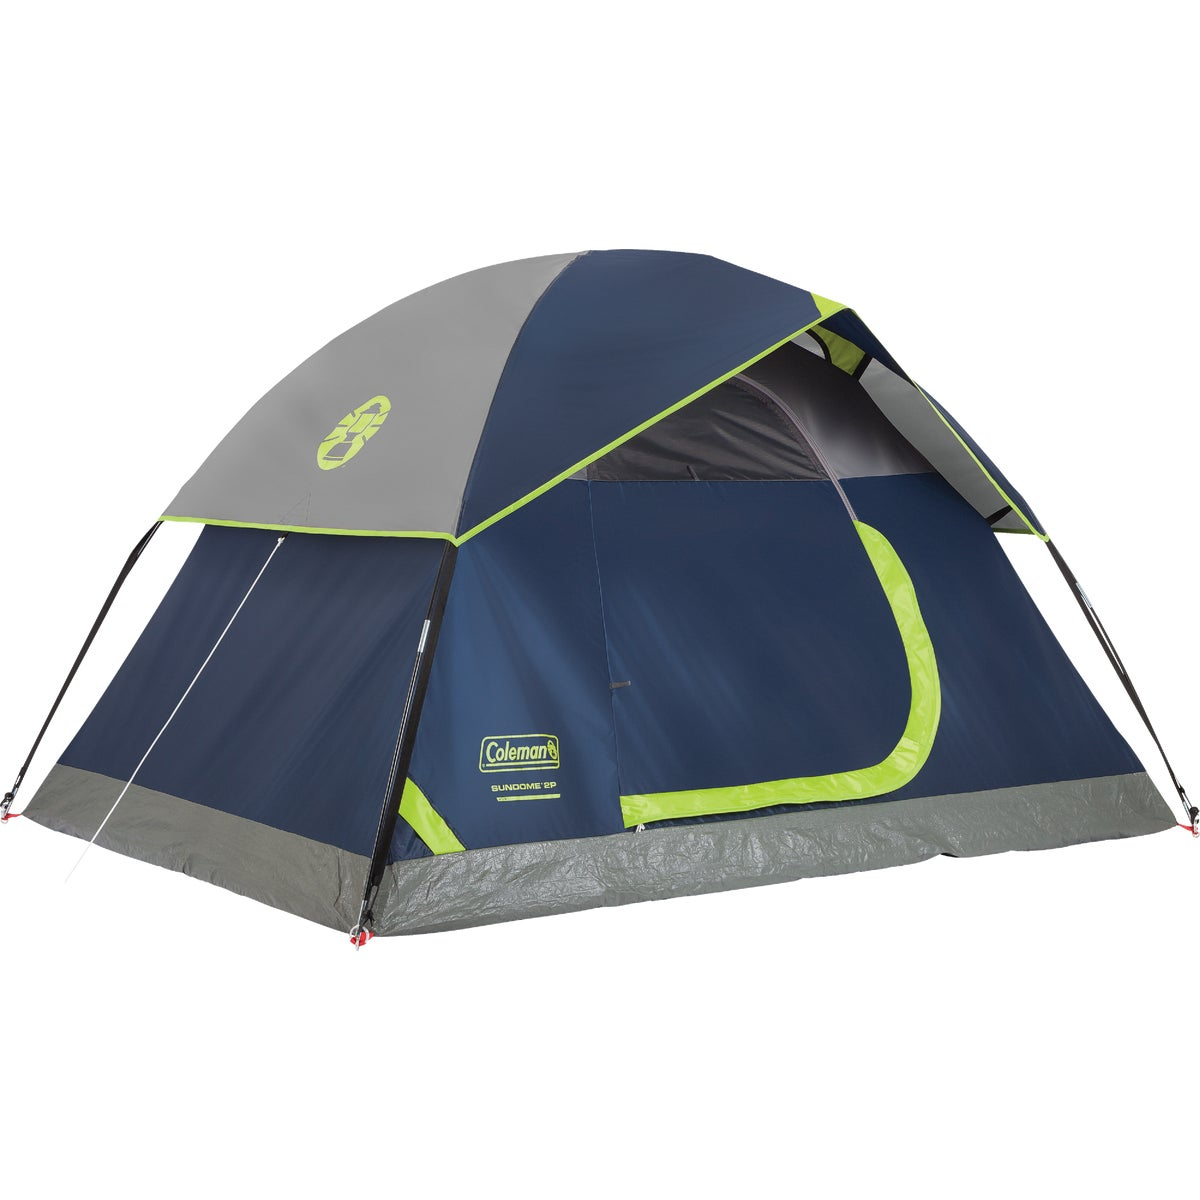 6X5 DOME TENT - 36494 by Academy Broadway Cor